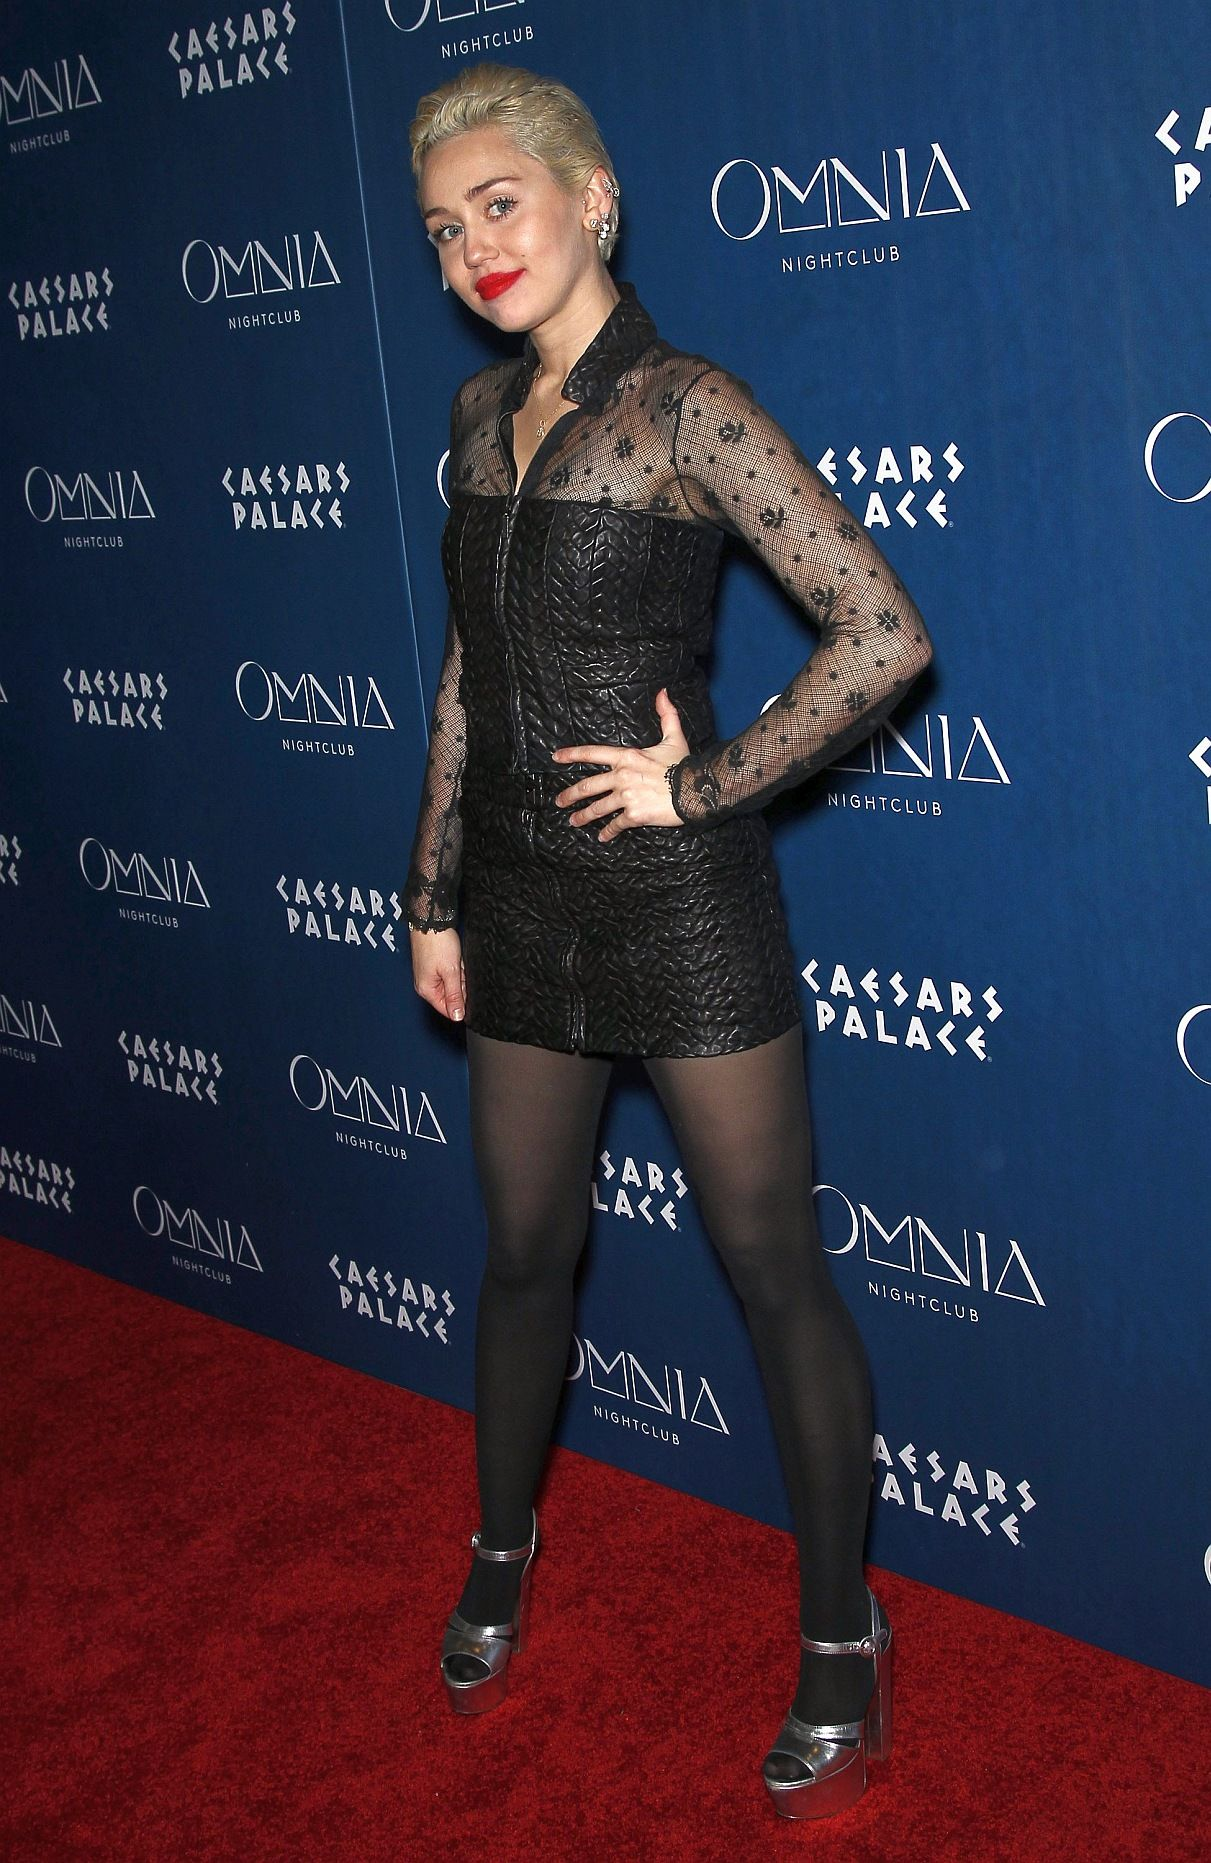 Miley cyrus in pantyhose